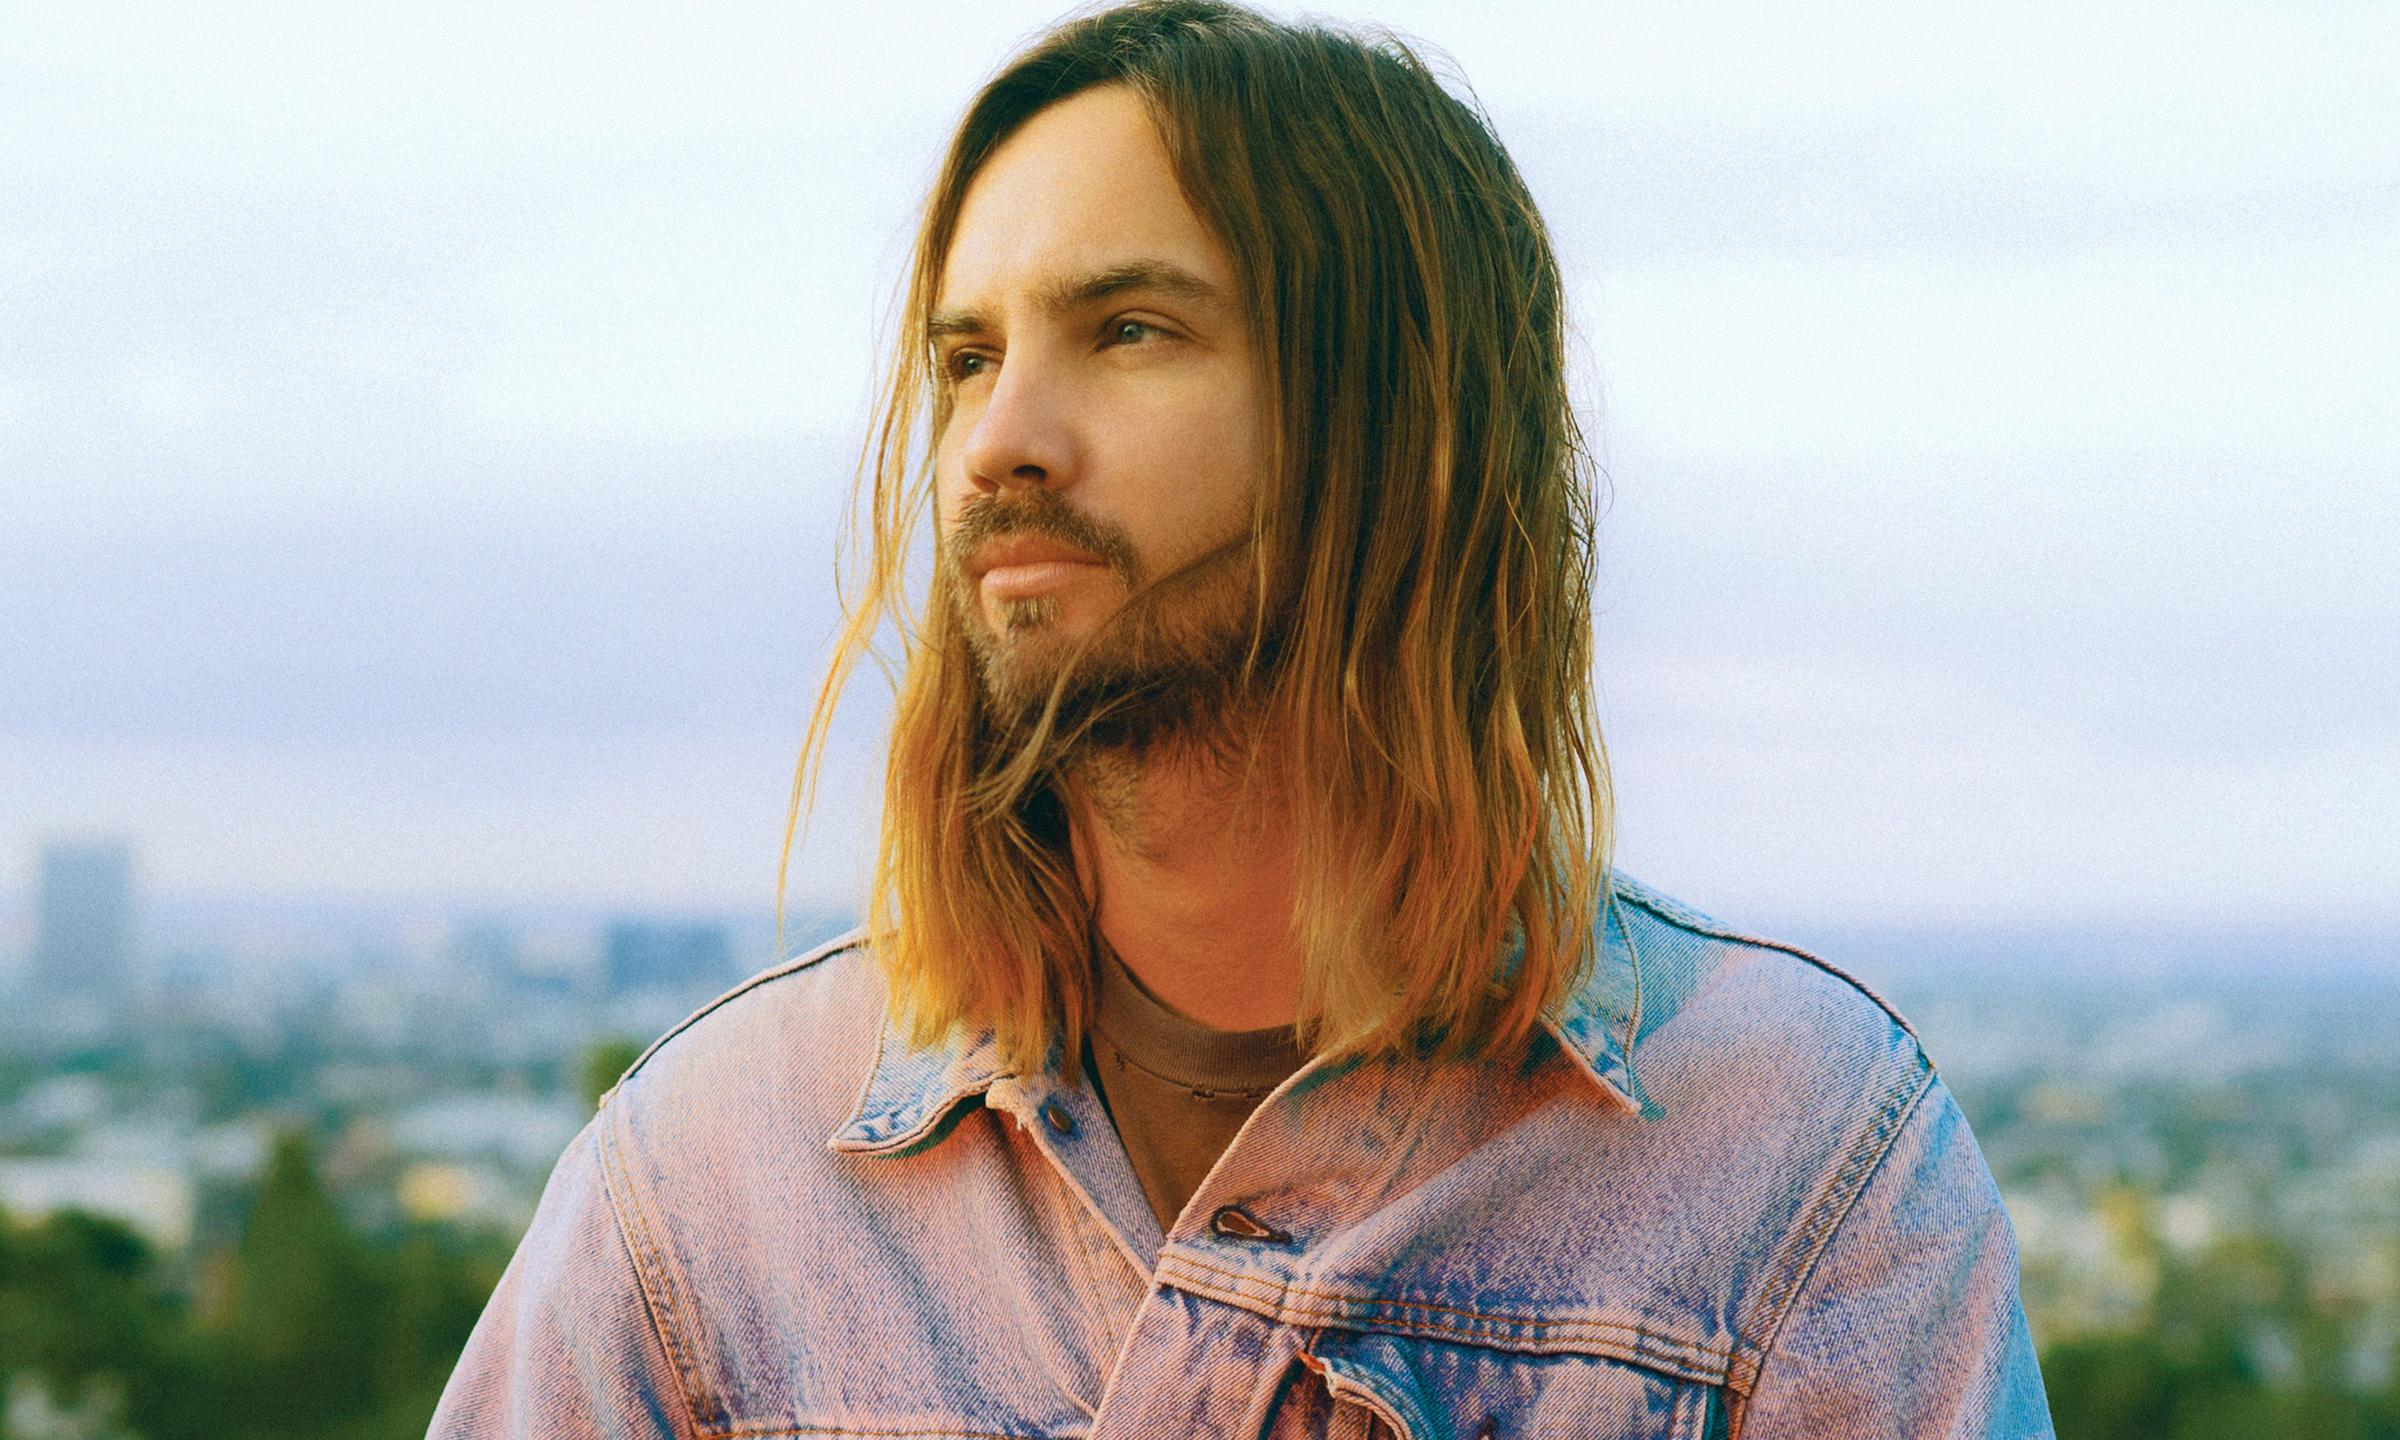 Tame Impala: The Slow Rush review – polished disco funk